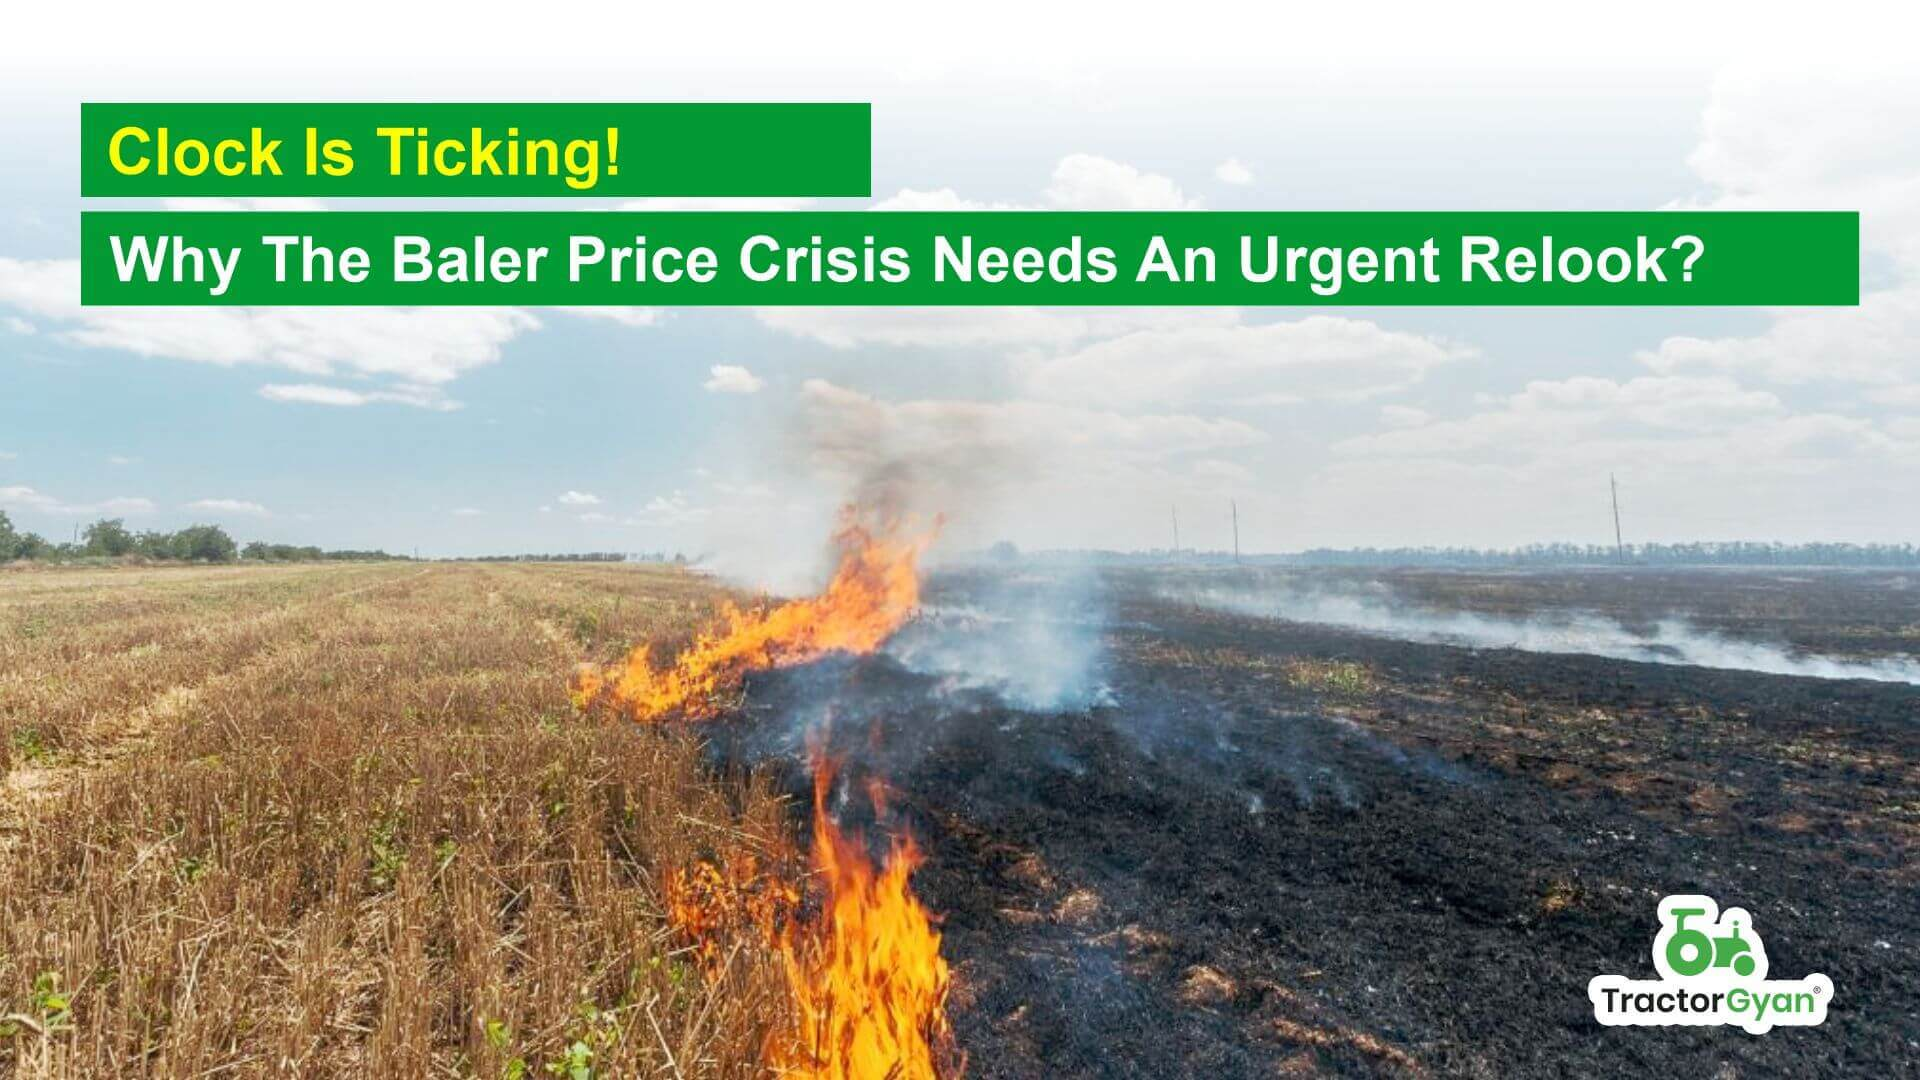 Clock is ticking! Why the Baler Price crisis needs an urgent relook?